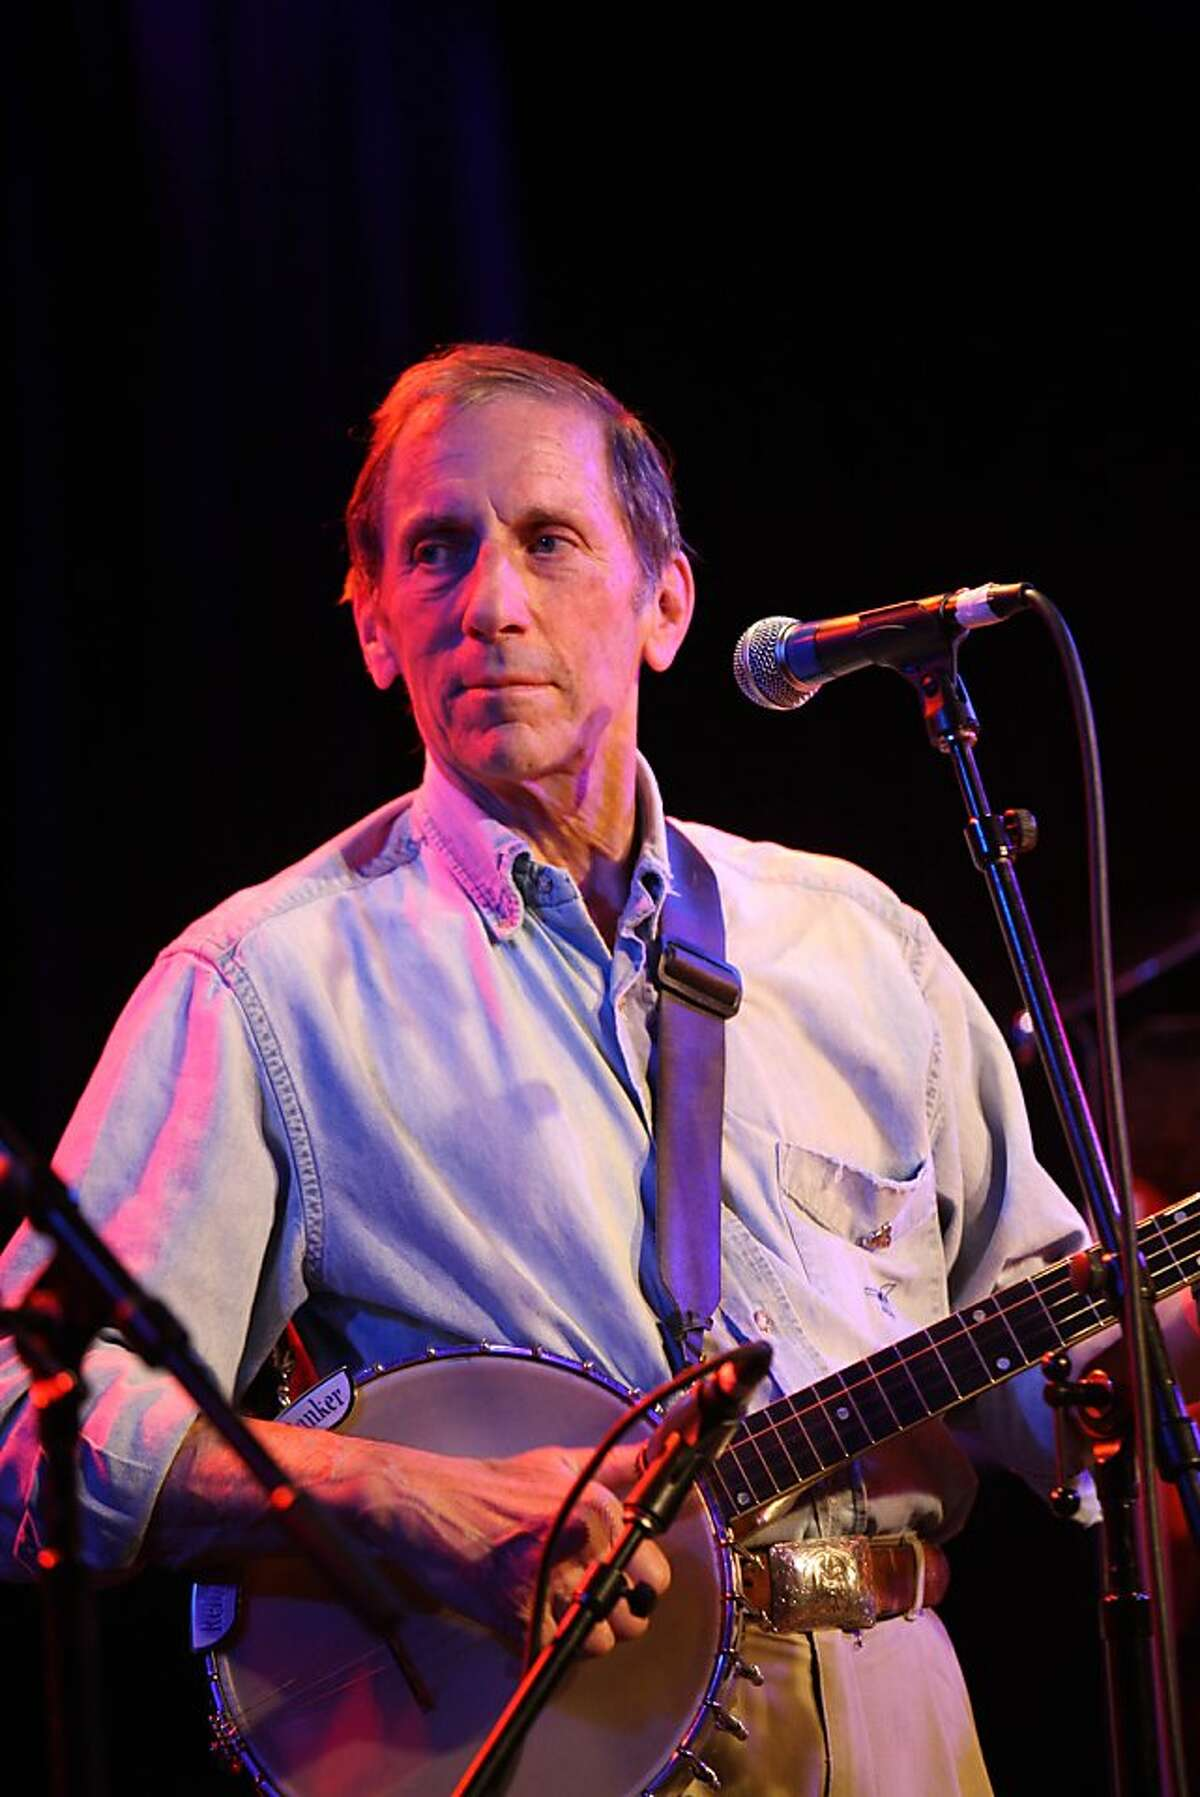 Warren Hellman, one of Slims partners, performs with the Wronglers during the gathering at a private party held to celebrate the 20th anniversary of Slims on Tuesday, October 14, 2008 in San Francisco, Calif.